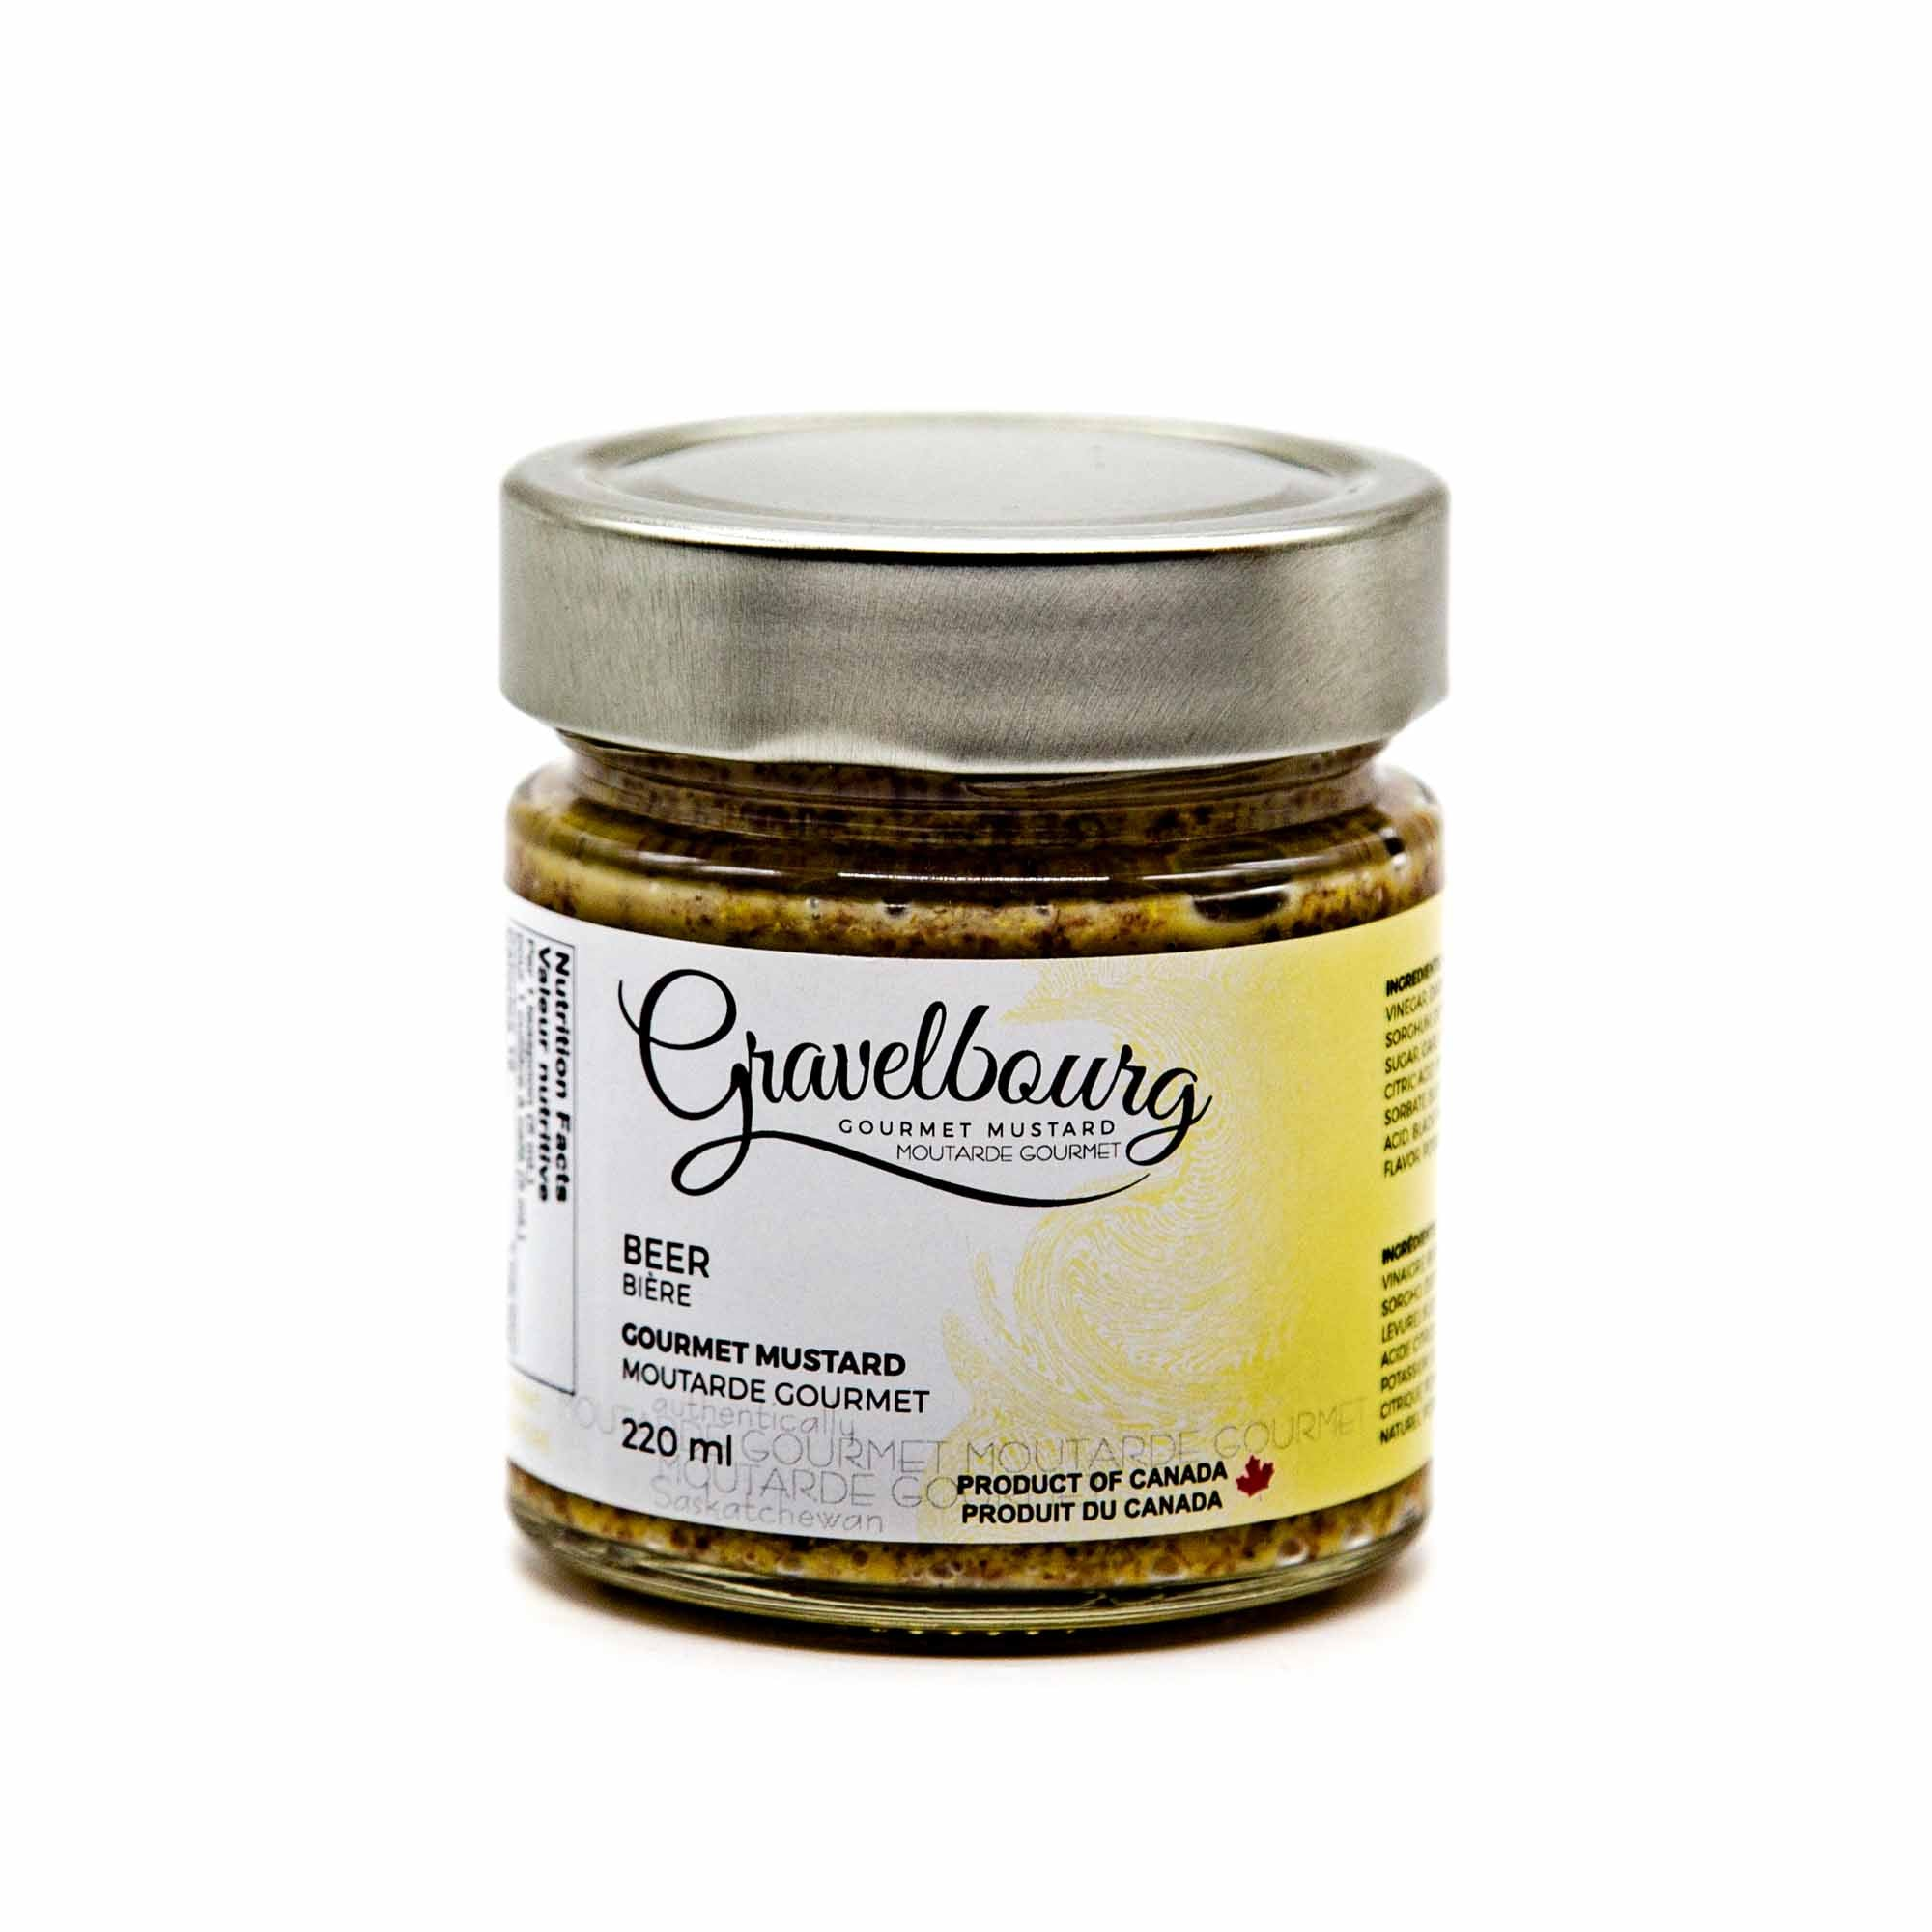 Gravelbourg Mustard - Beer Style Gourmet Mustard - Mortise And Tenon